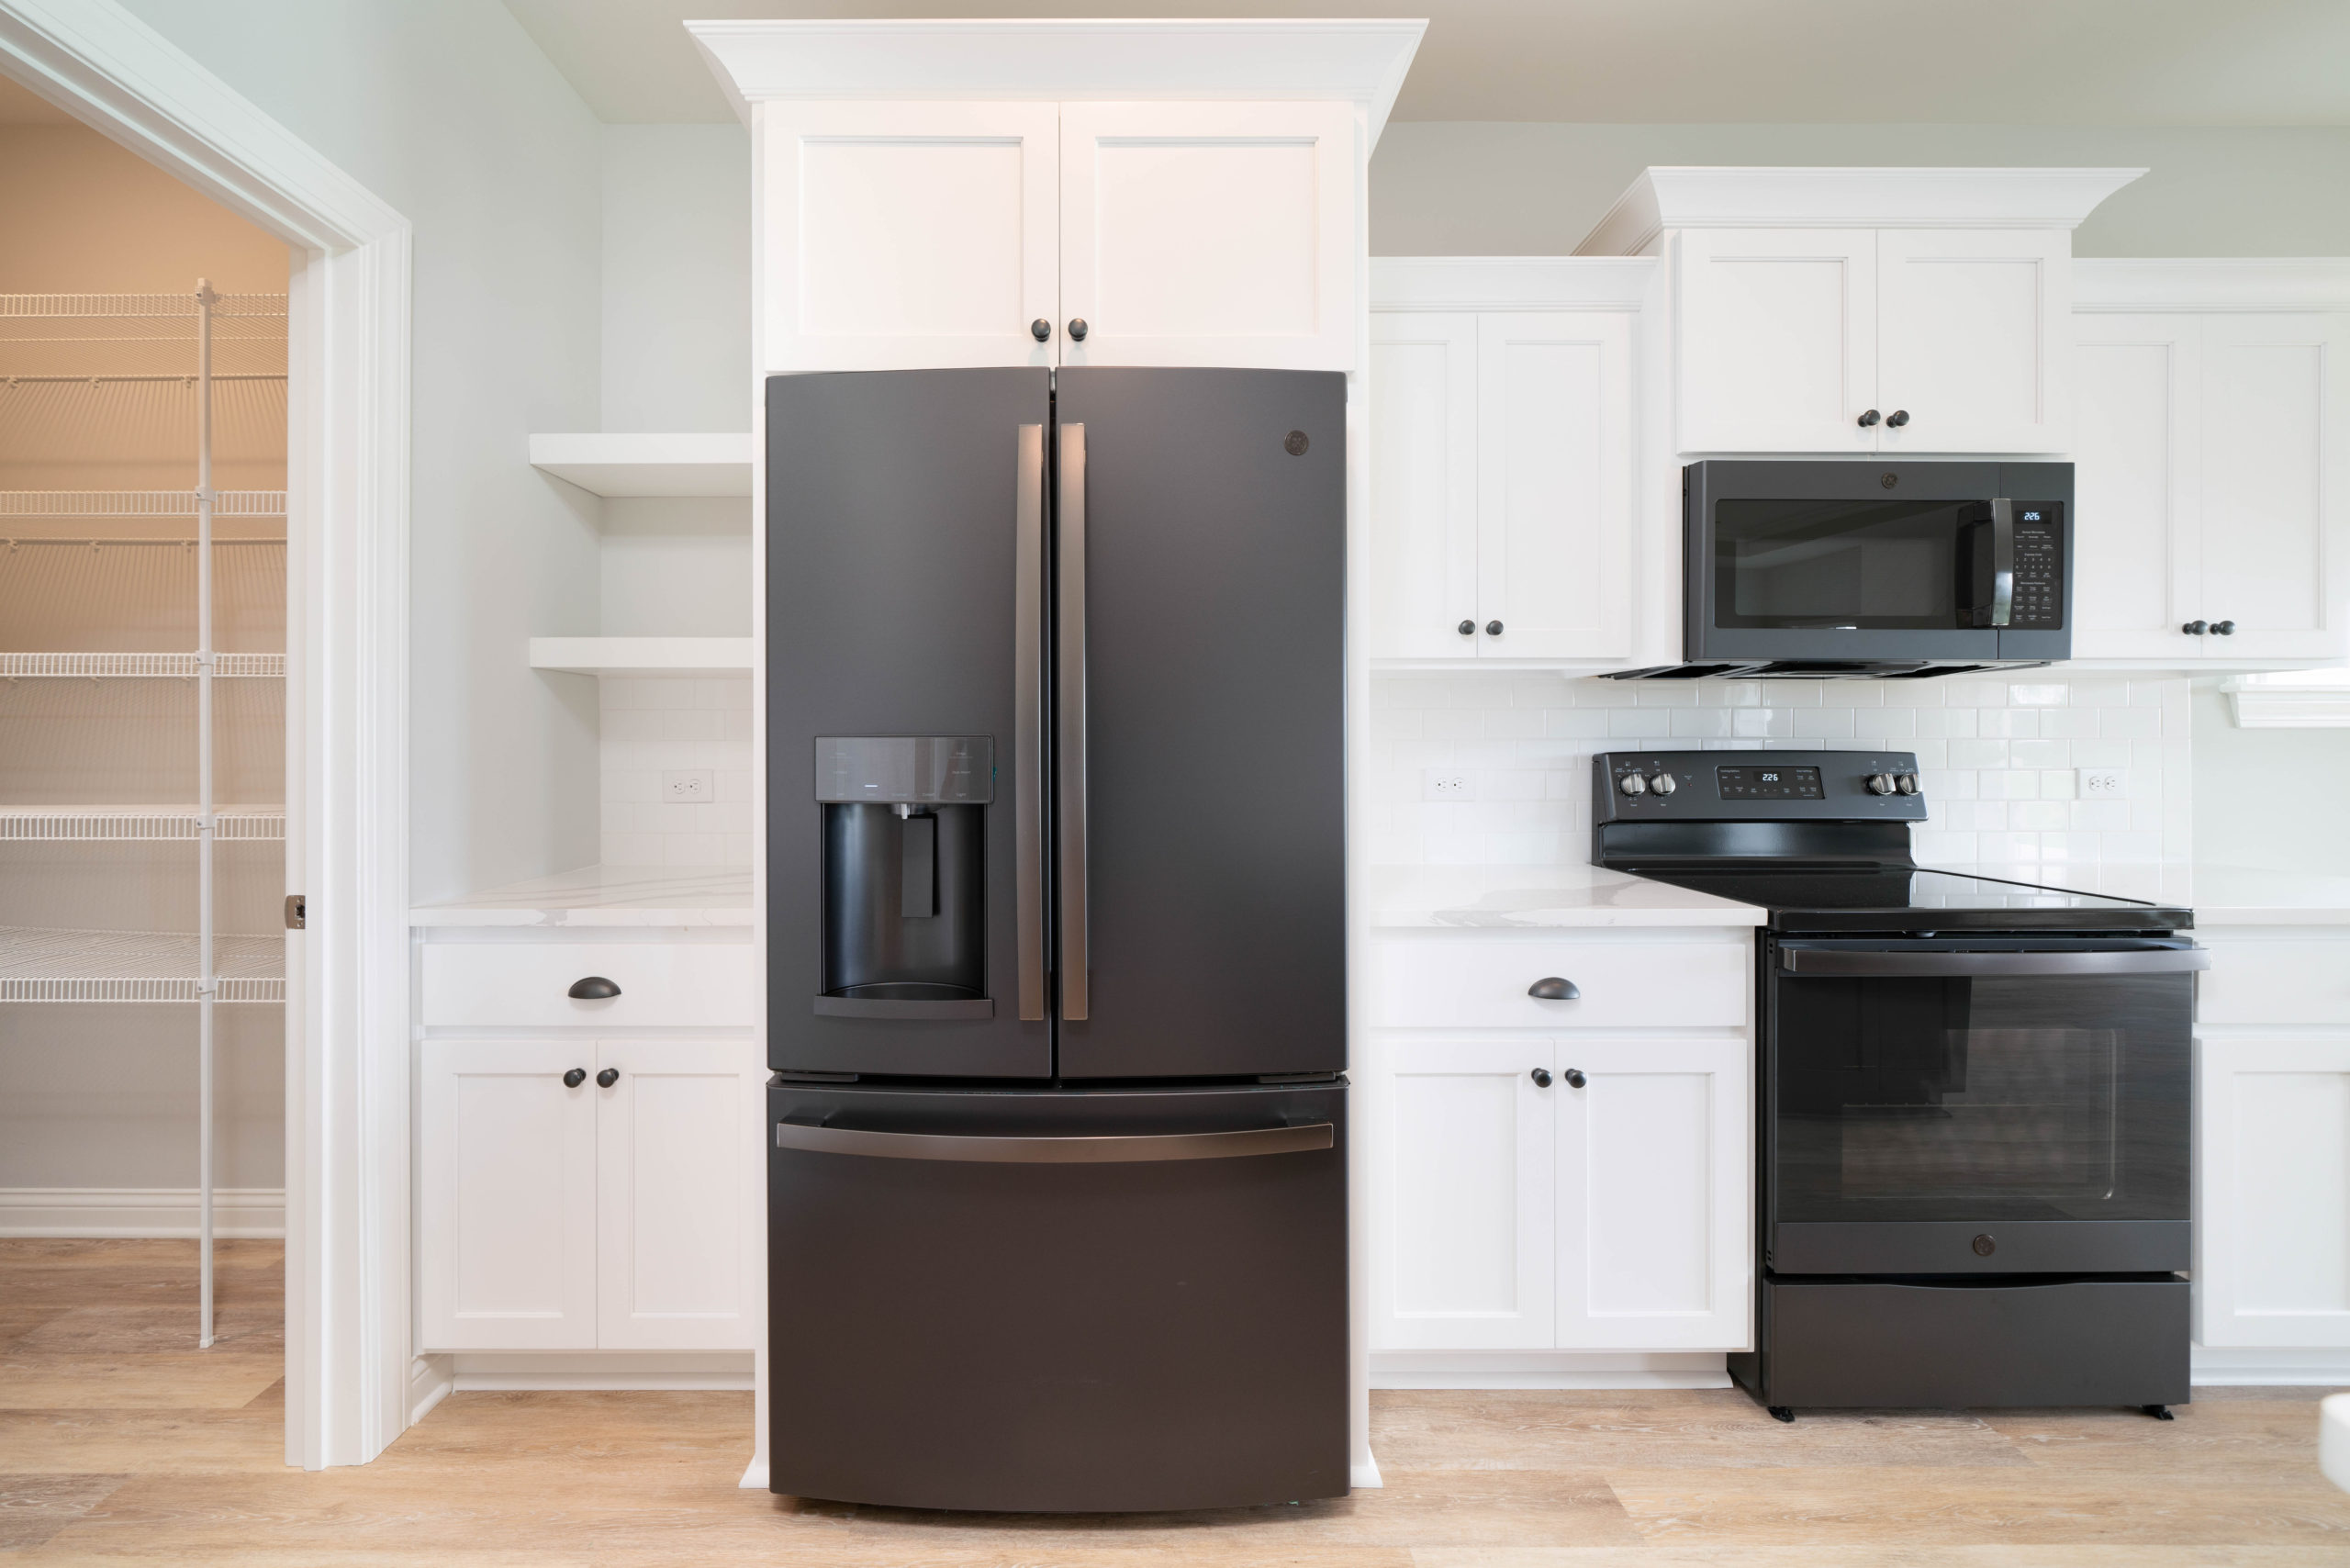 black kitchen appliances with white cabinetry